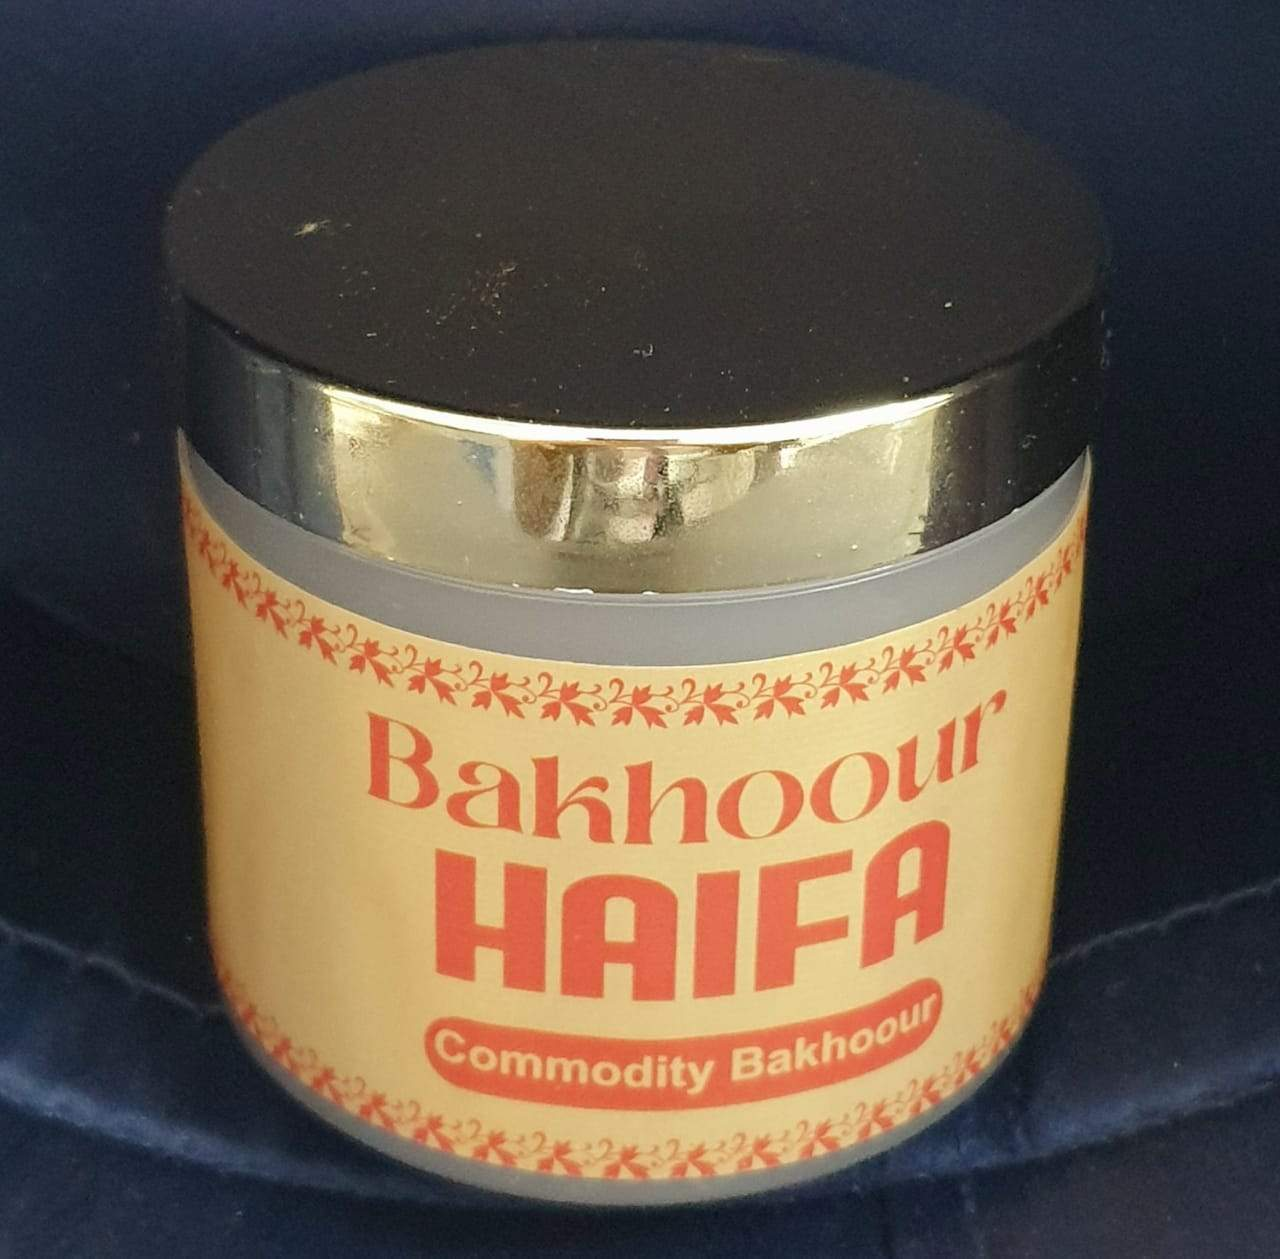 Oud moattar Haifa Original  By Fakhir Comodity Bakhoor Wood Sticks Made in UAE